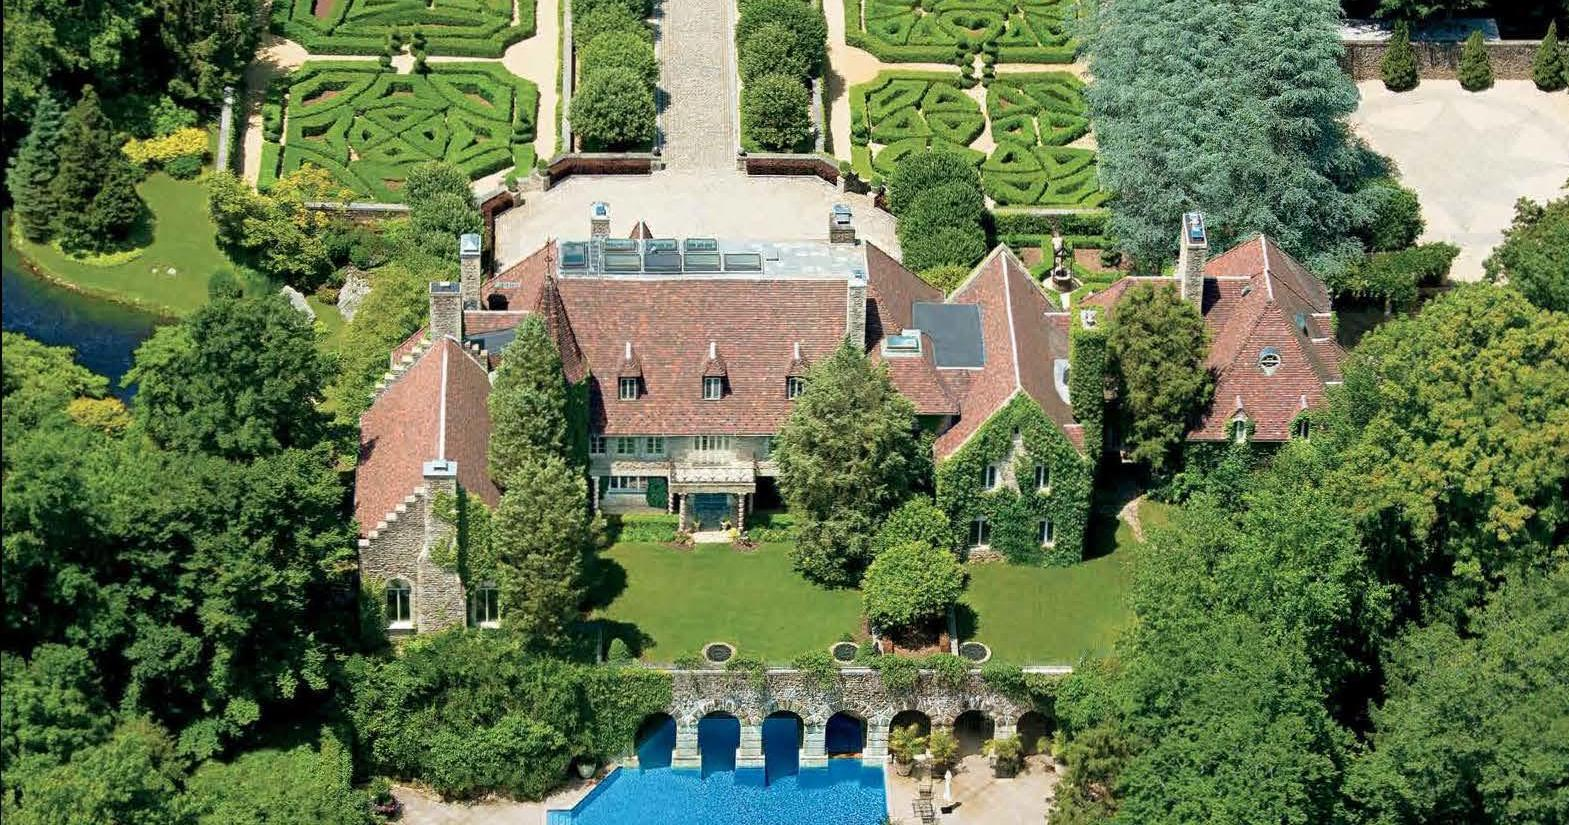 Greenwich, CT's Historic c.1927 Ream Chateau on the Market for $25M (PHOTOS)